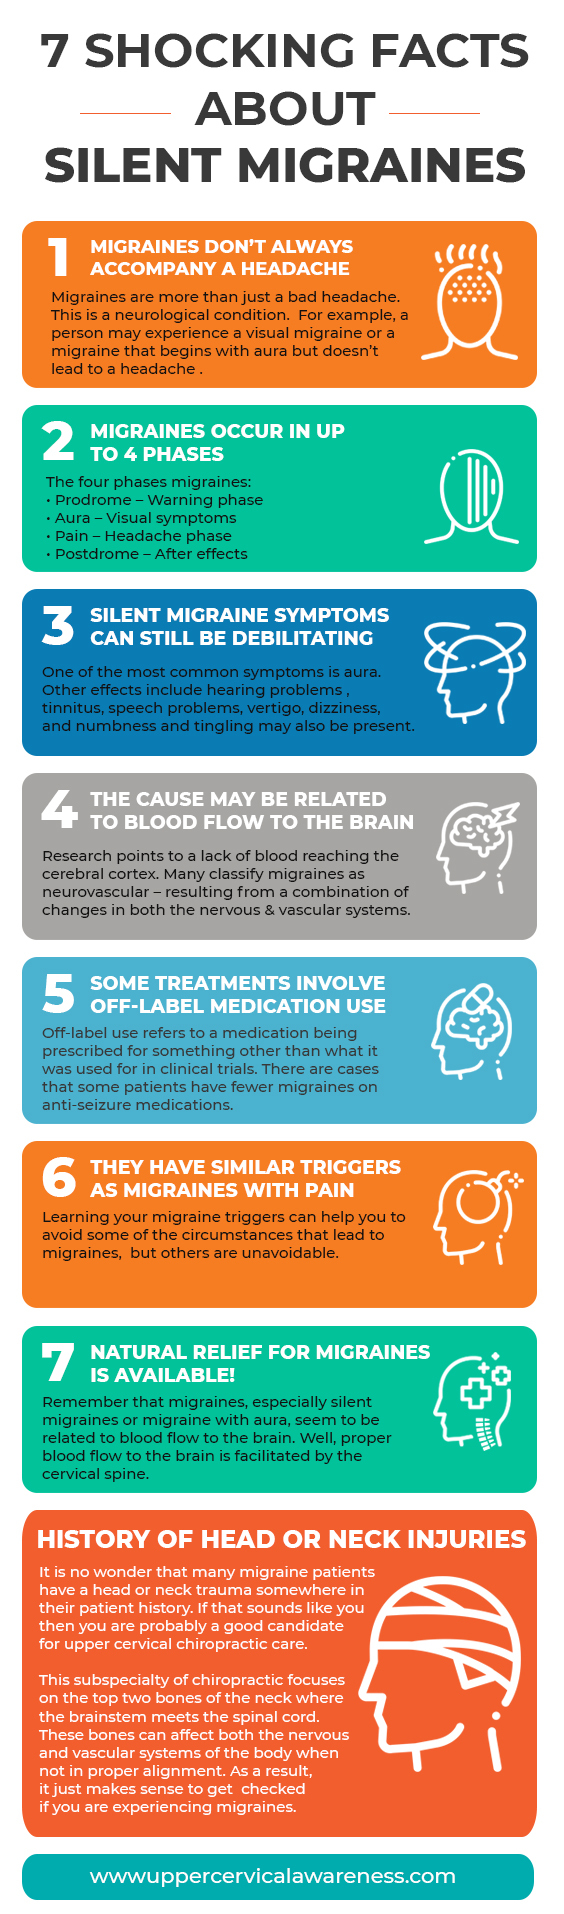 7-shocking-facts-about-silent-migraines